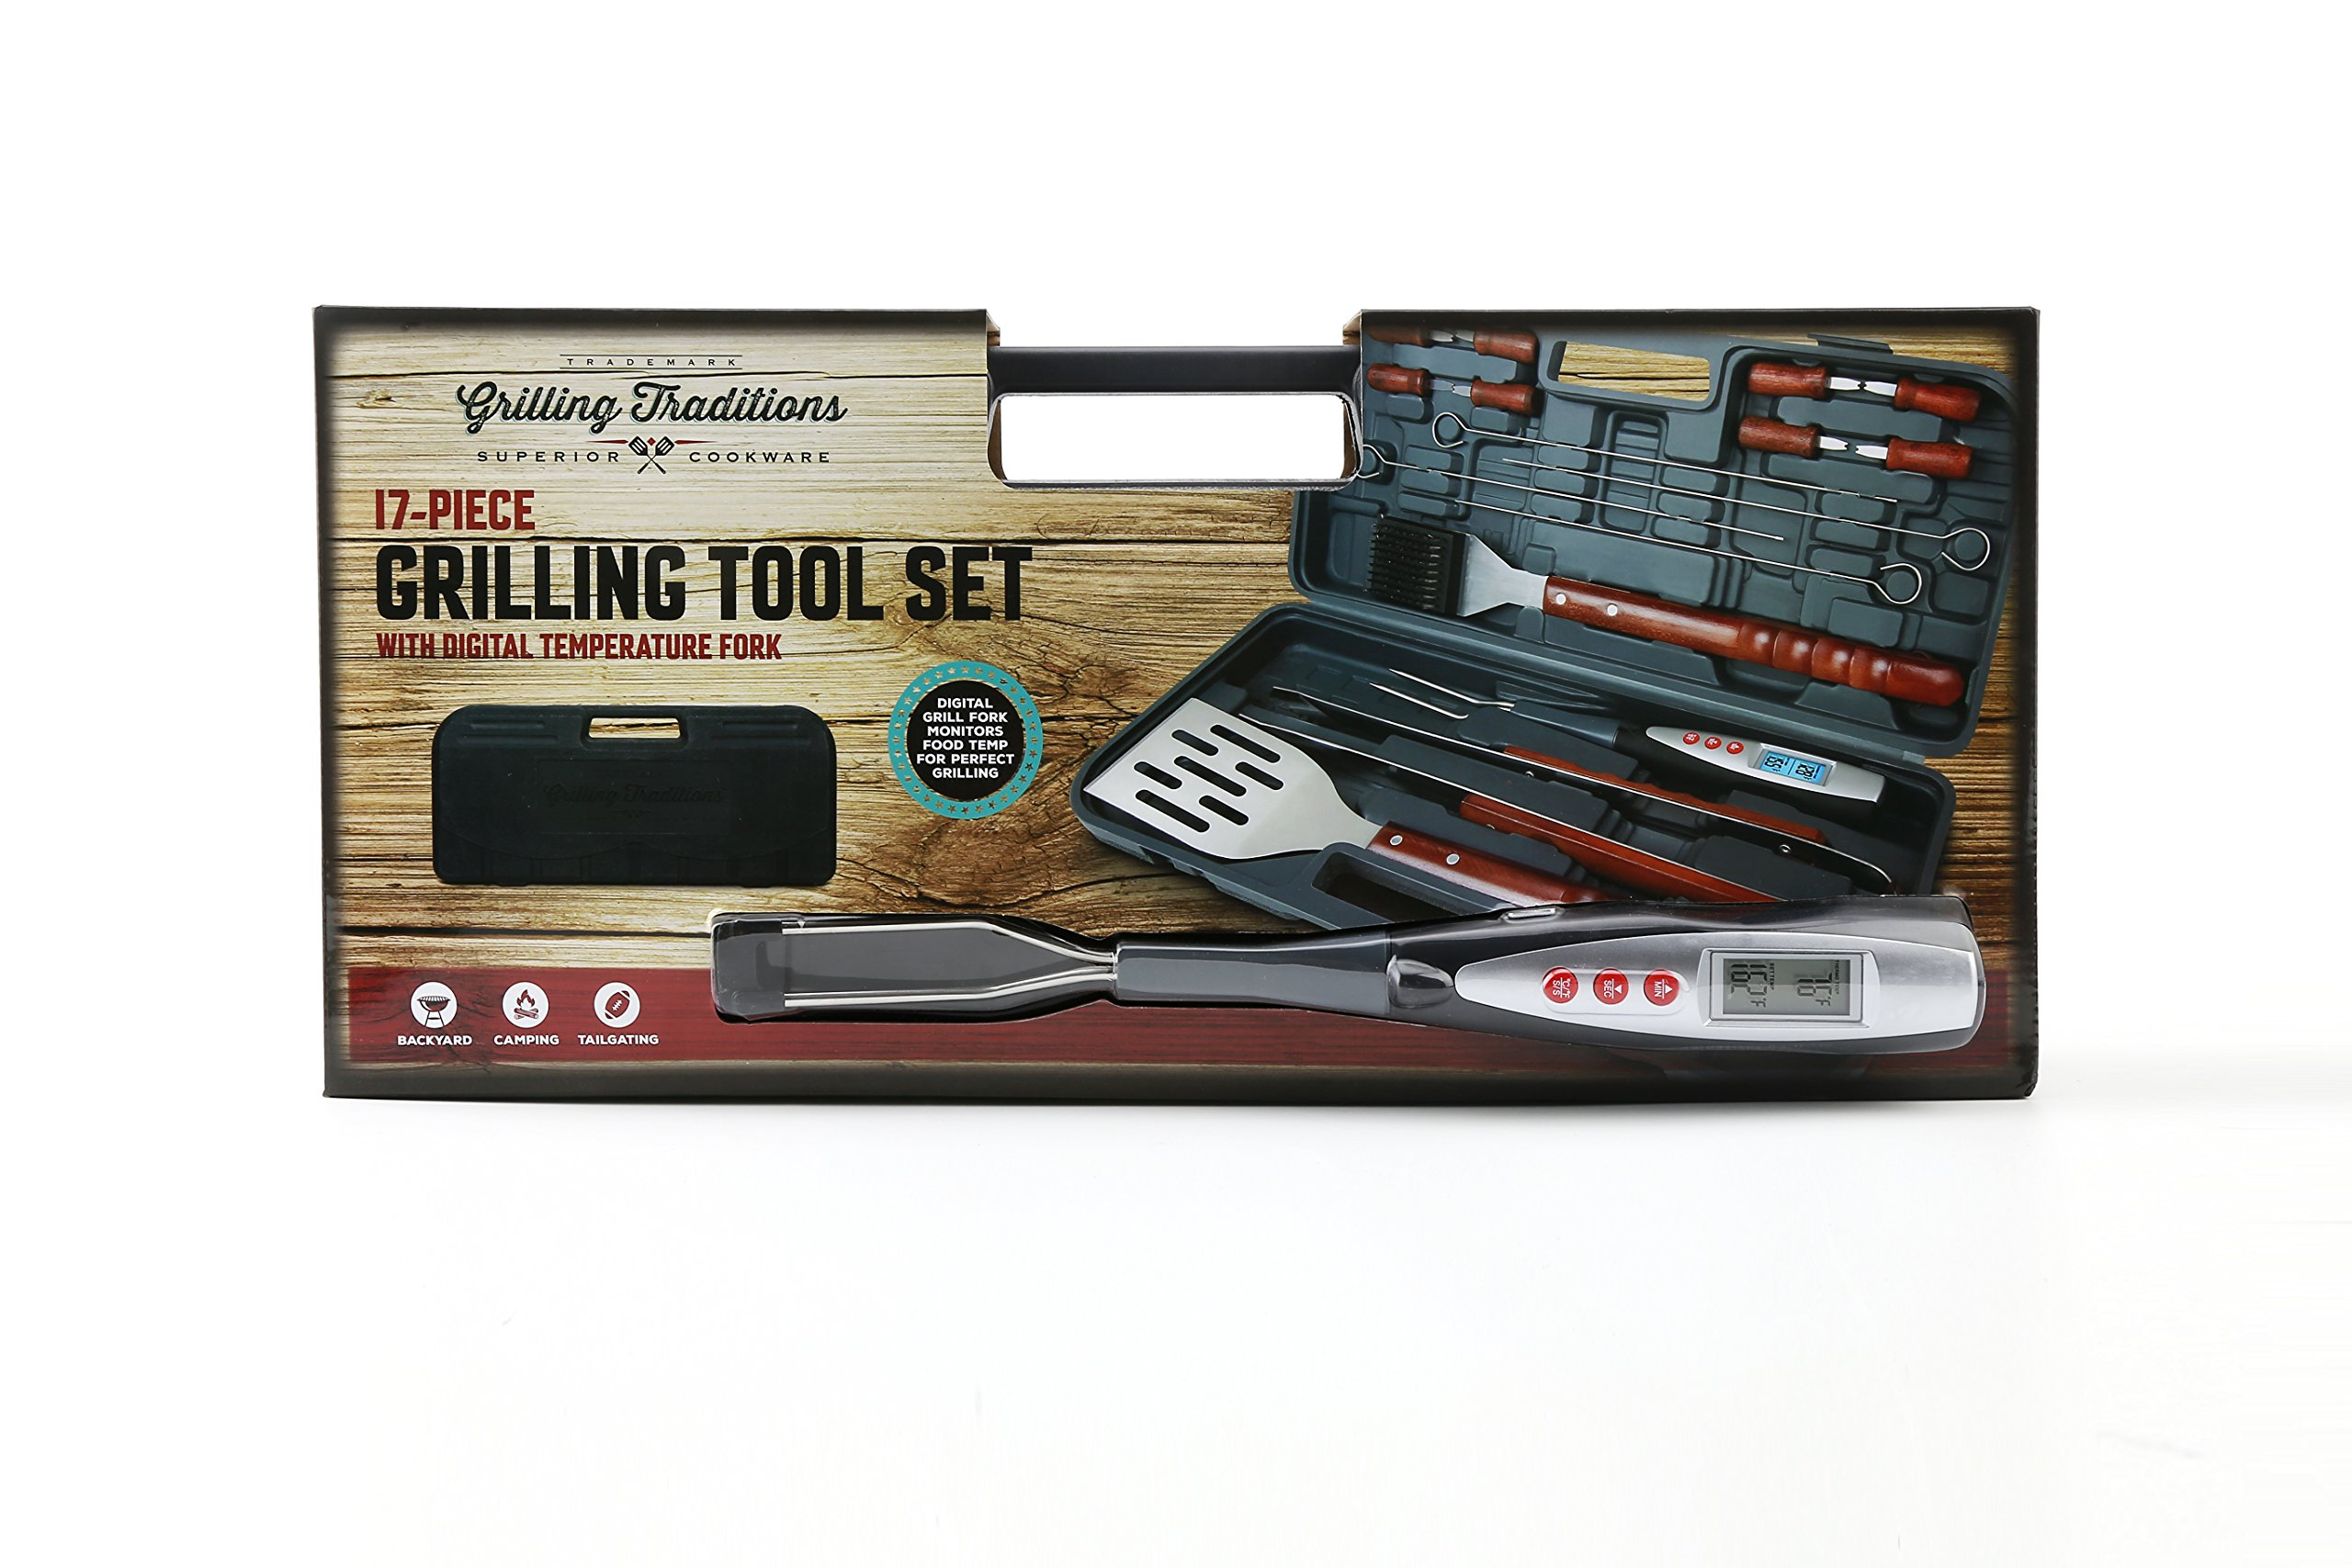 Grilling Traditions 17 Piece Grilling Tool Set by Grilling Traditions (Image #4)